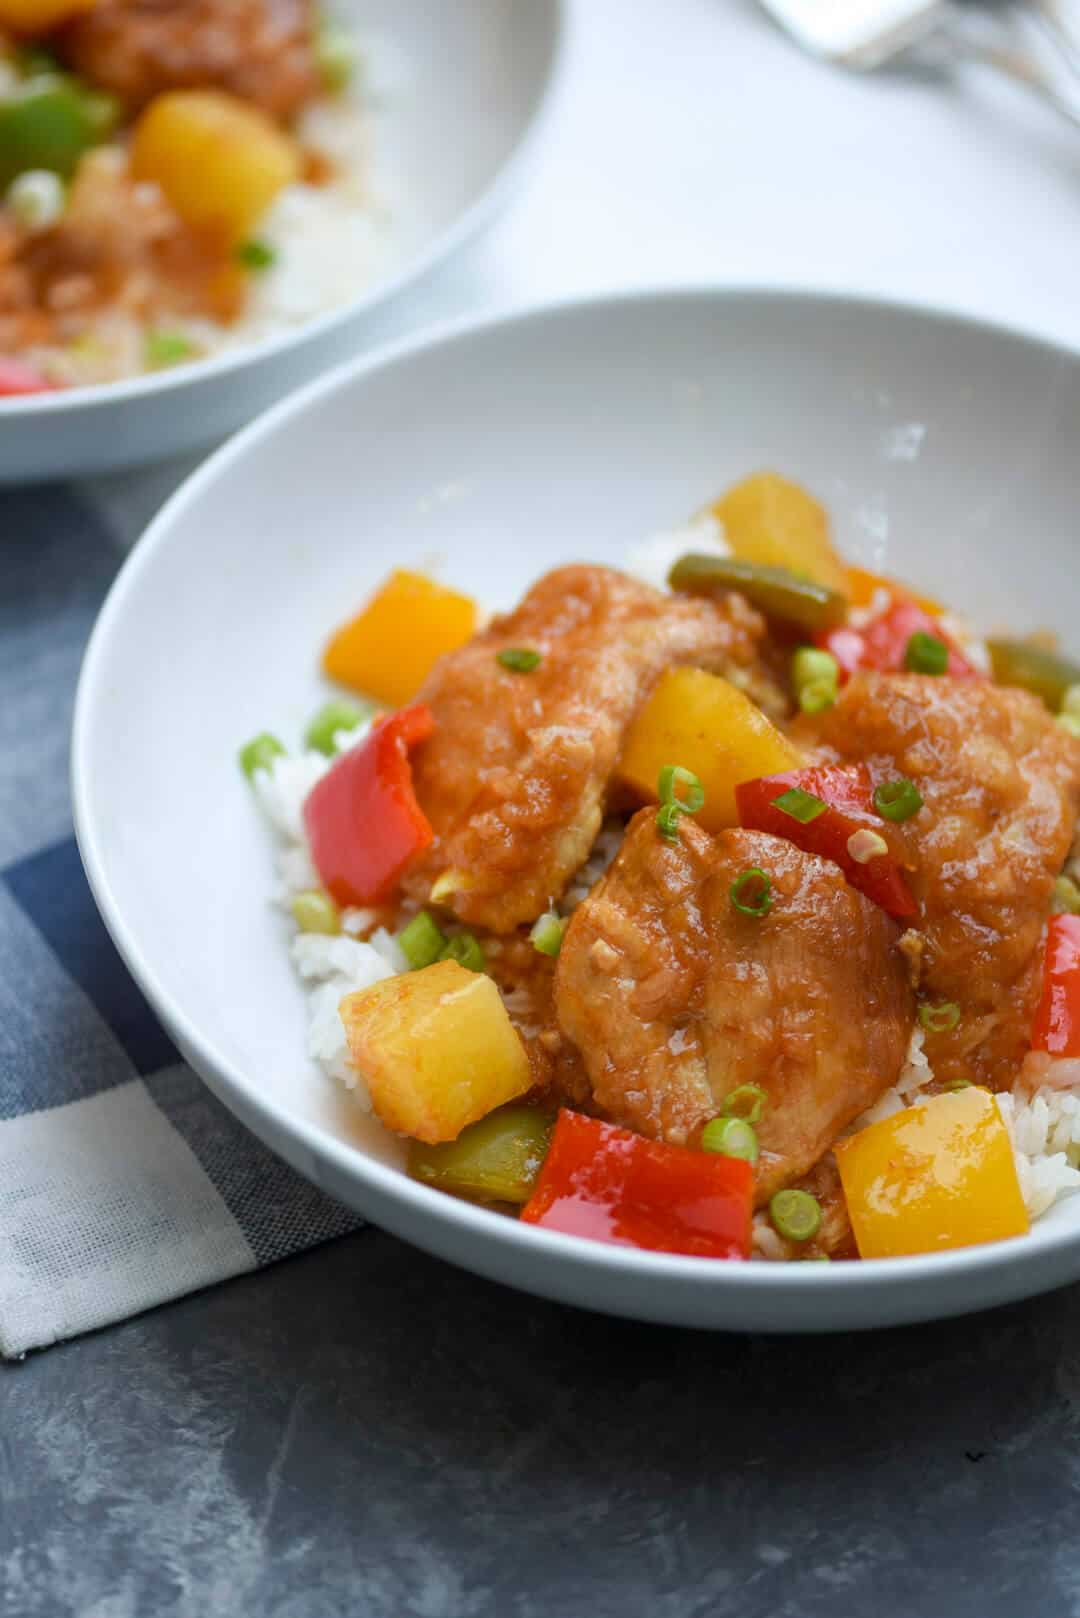 Slow Cooker Sweet and Sour Chicken with colorful bell peppers and pineapple chunks cooked in a sticky, sweet sauce. Fork tender and so flavorful!